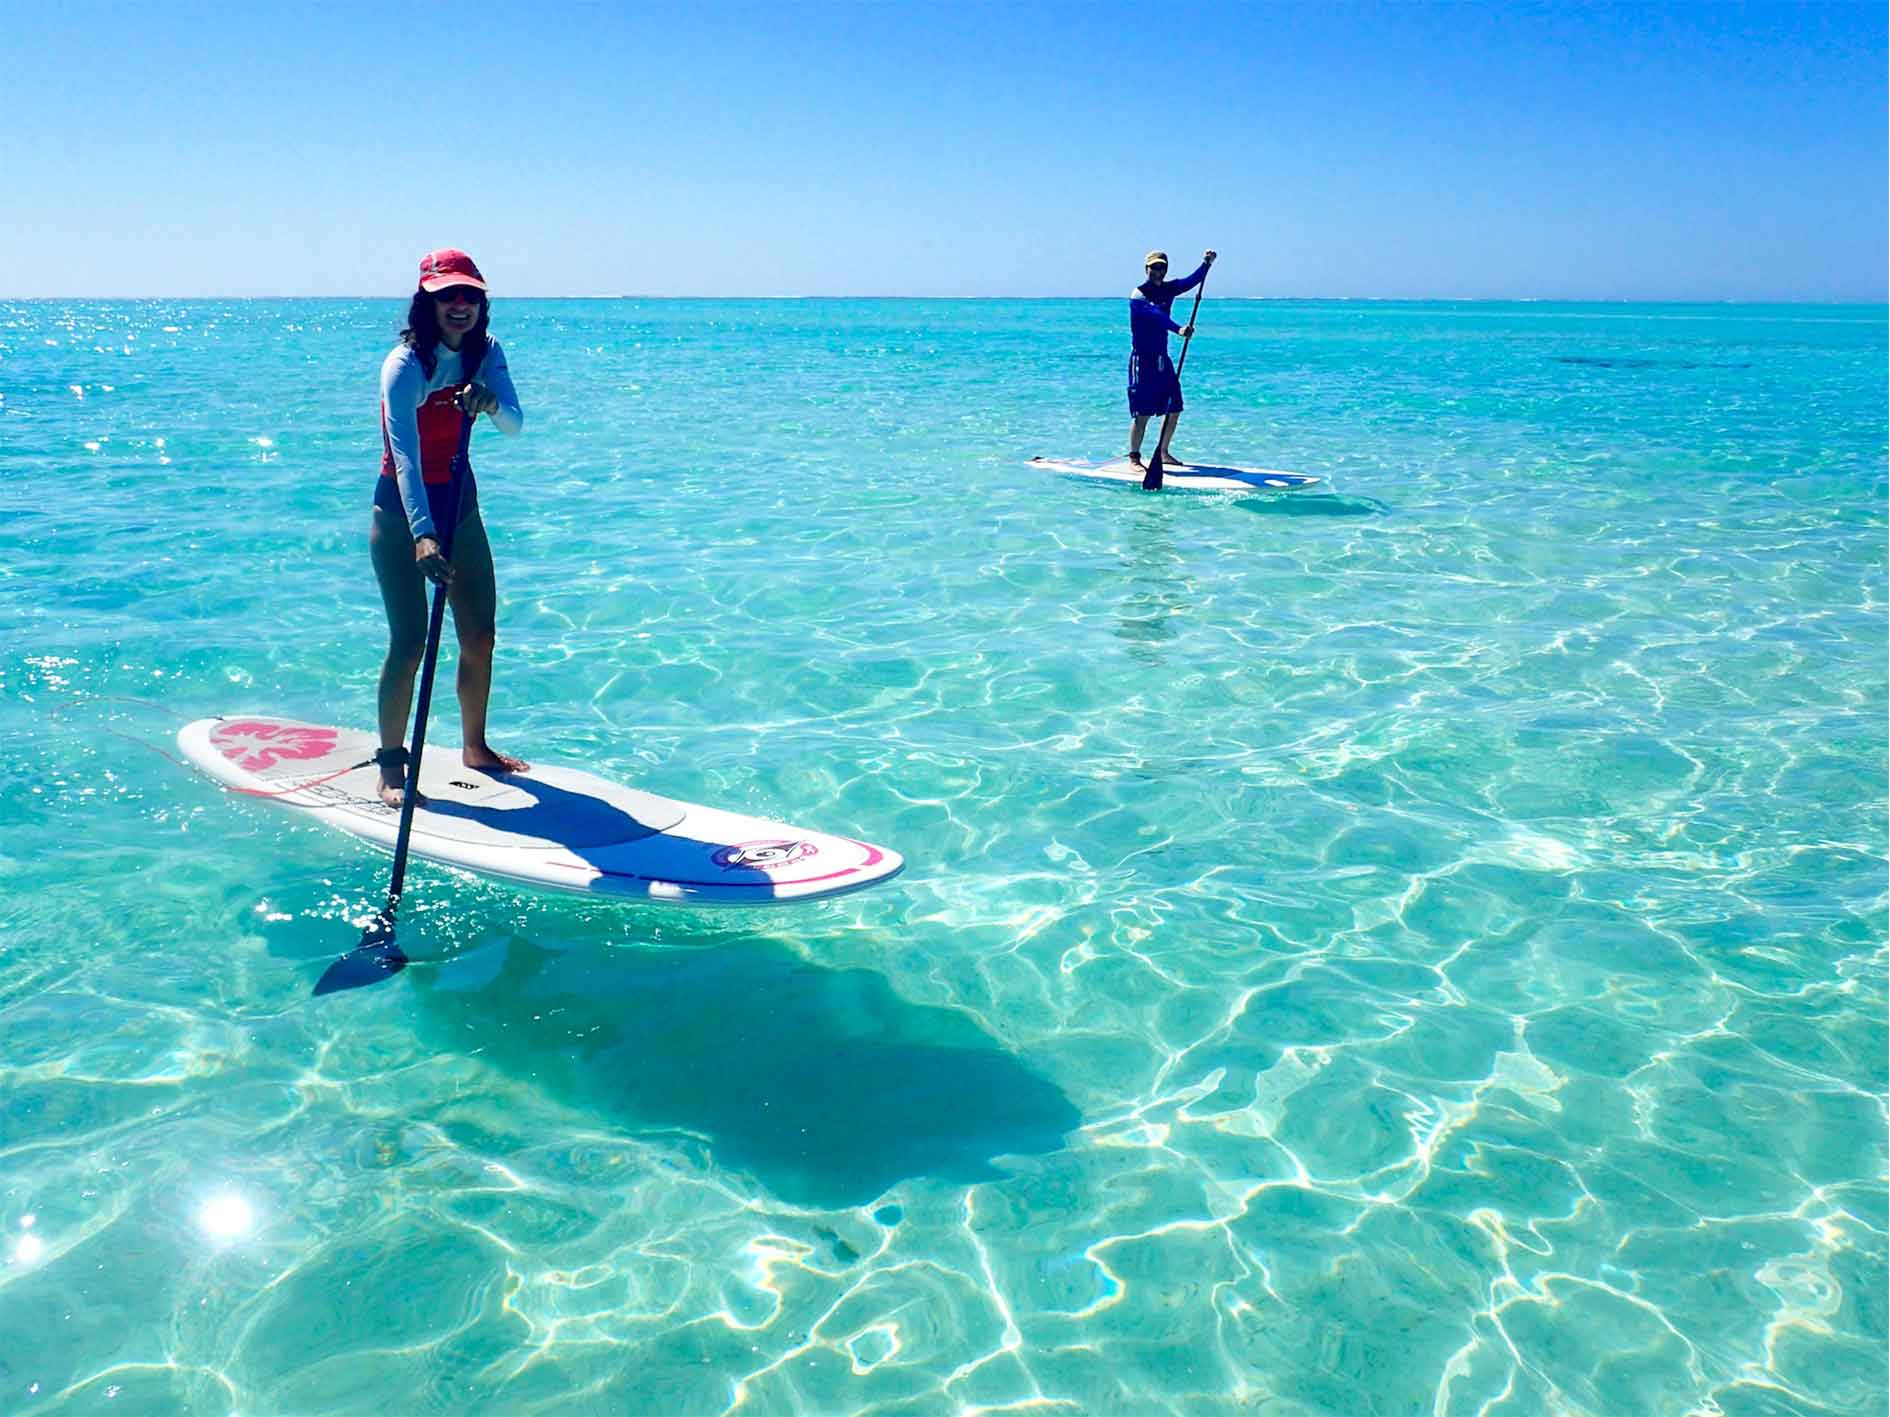 Big Day Out, Sea Kayak, Snorkel, Ningaloo Reef, Kayak, Ningaloo, snorkel, eco tour, guided tour, Exmouth, western australia, exmouth adventure co, coral coast stand up paddle, stand up paddle board, SUP, Gift Vouchers, Gift Vouchers Exmouth, Gift Vouchers Ningaloo, Experience gifting